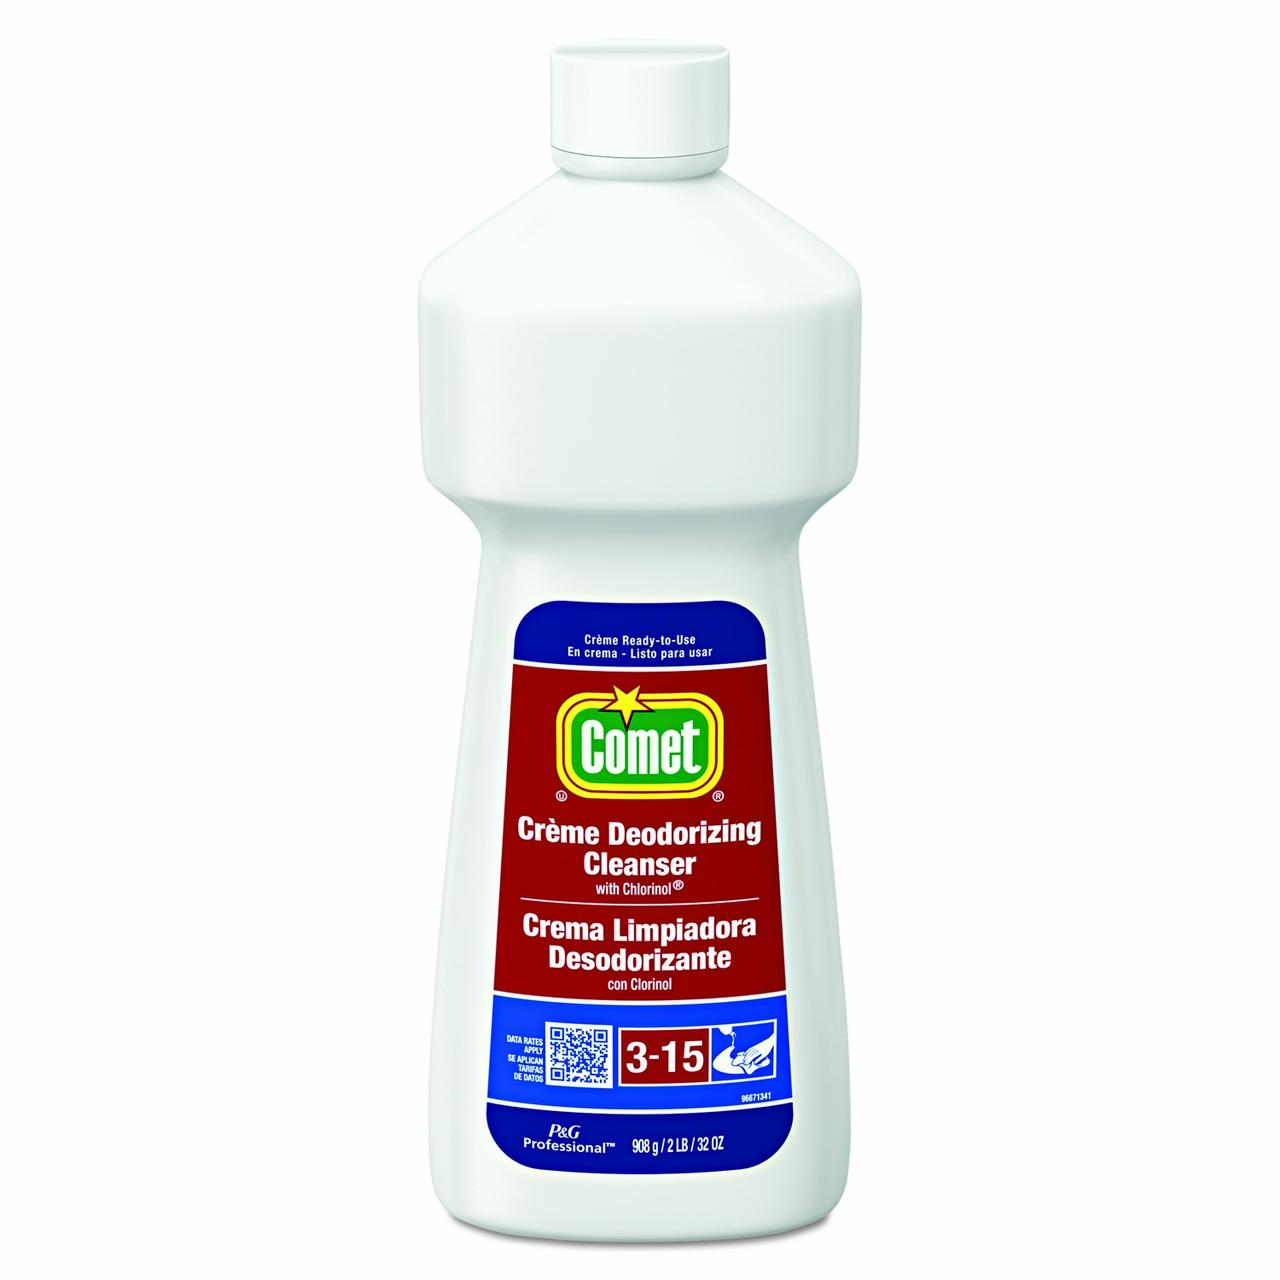 Click here to buy Comet Cr?me Deodorizing Cleanser, 32 Oz Bottle by Procter & Gamble.